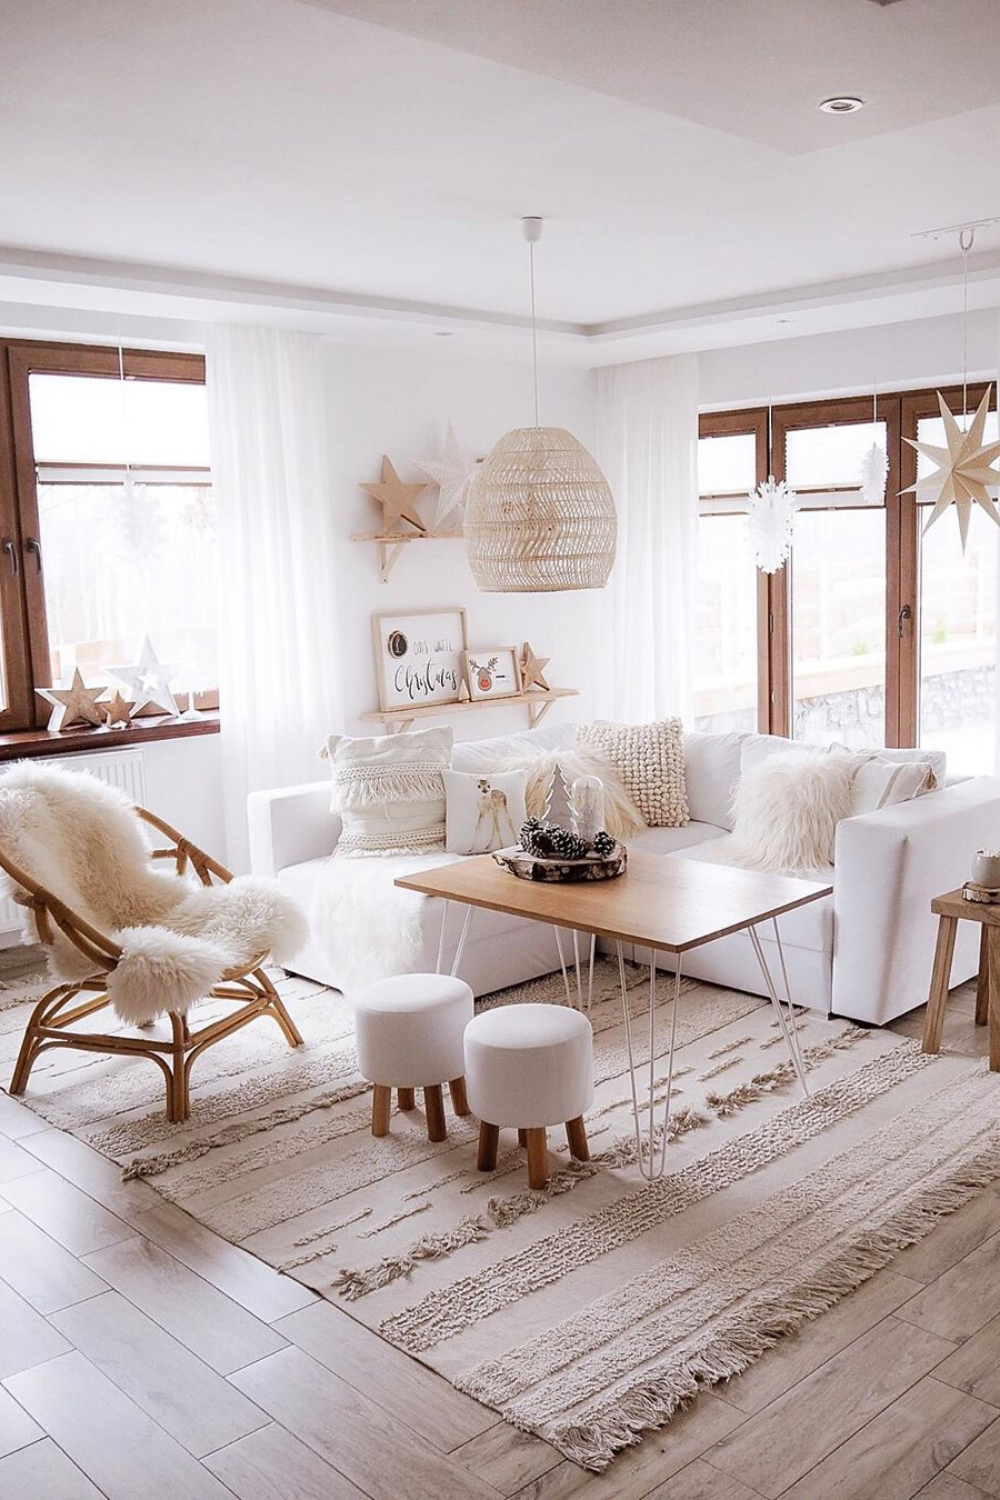 25 Stylish Living Room Decor Ideas For Any Budget In 2020 Stylish Living Room Living Room Decor Home #stylish #living #room #furniture